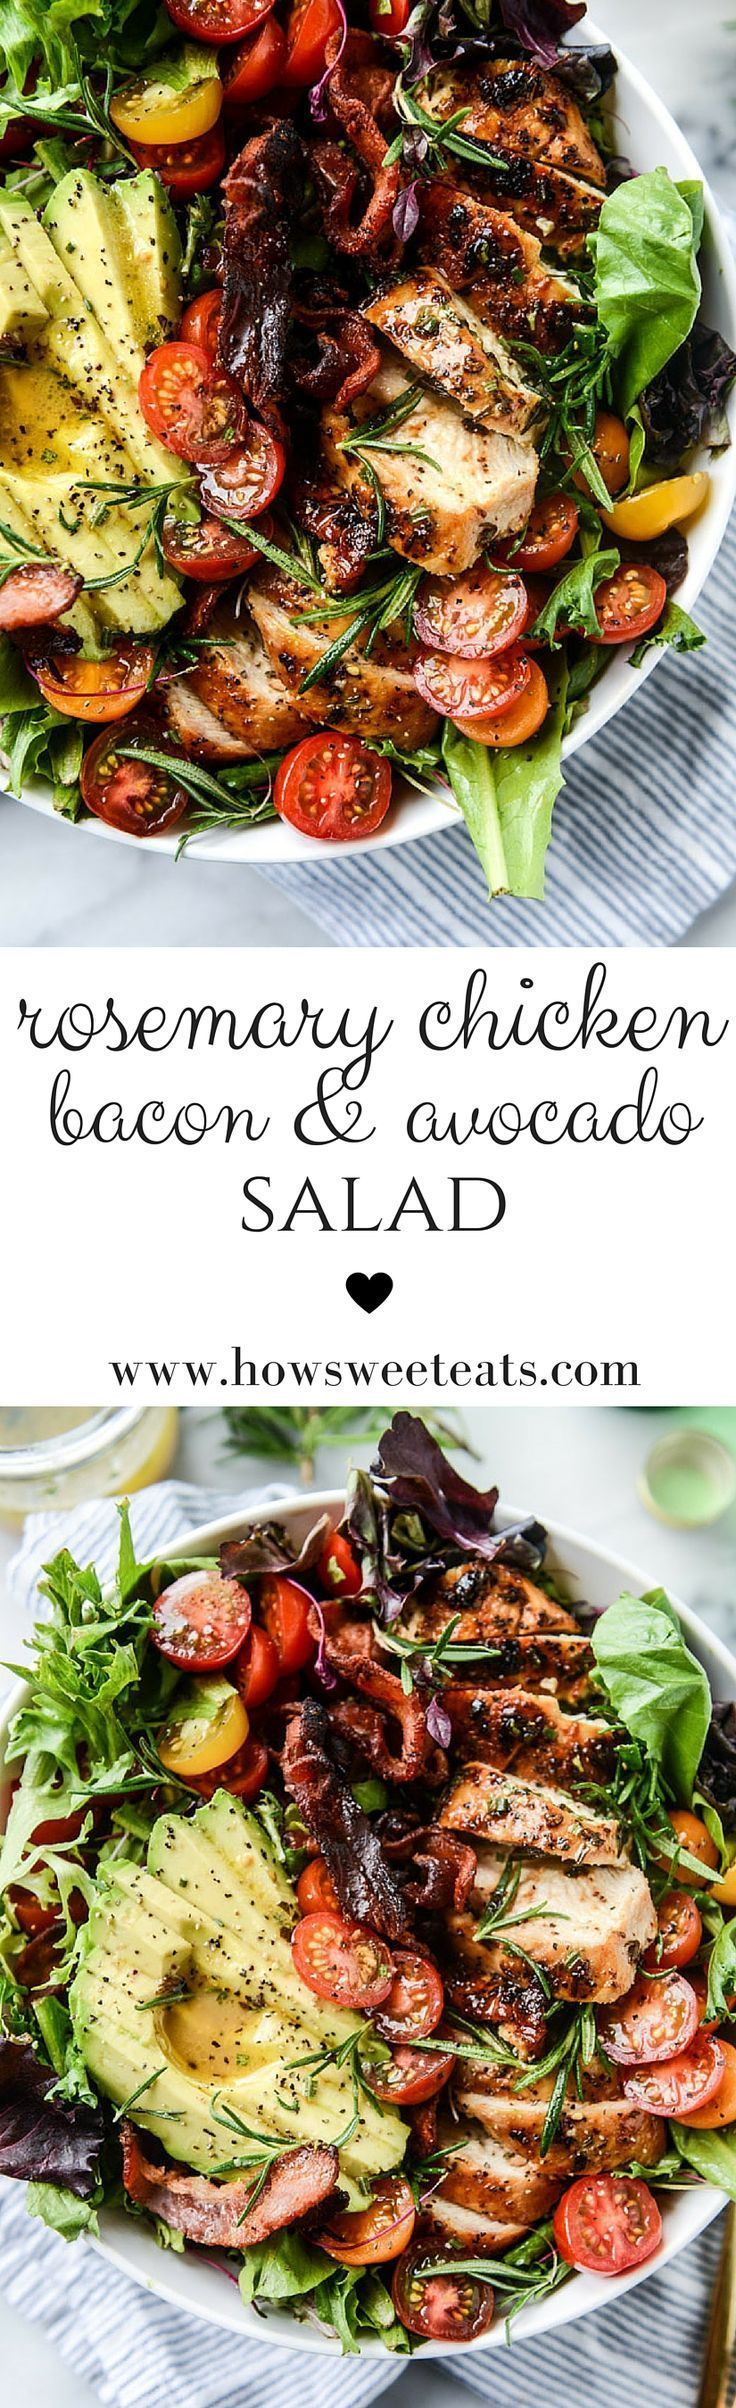 Rosemary Chicken, Bacon and Avocado Salad by /howsweeteats/ I http://howsweeteats.com #rosemarychicken #bacon #avocado #salad #howsweeteats